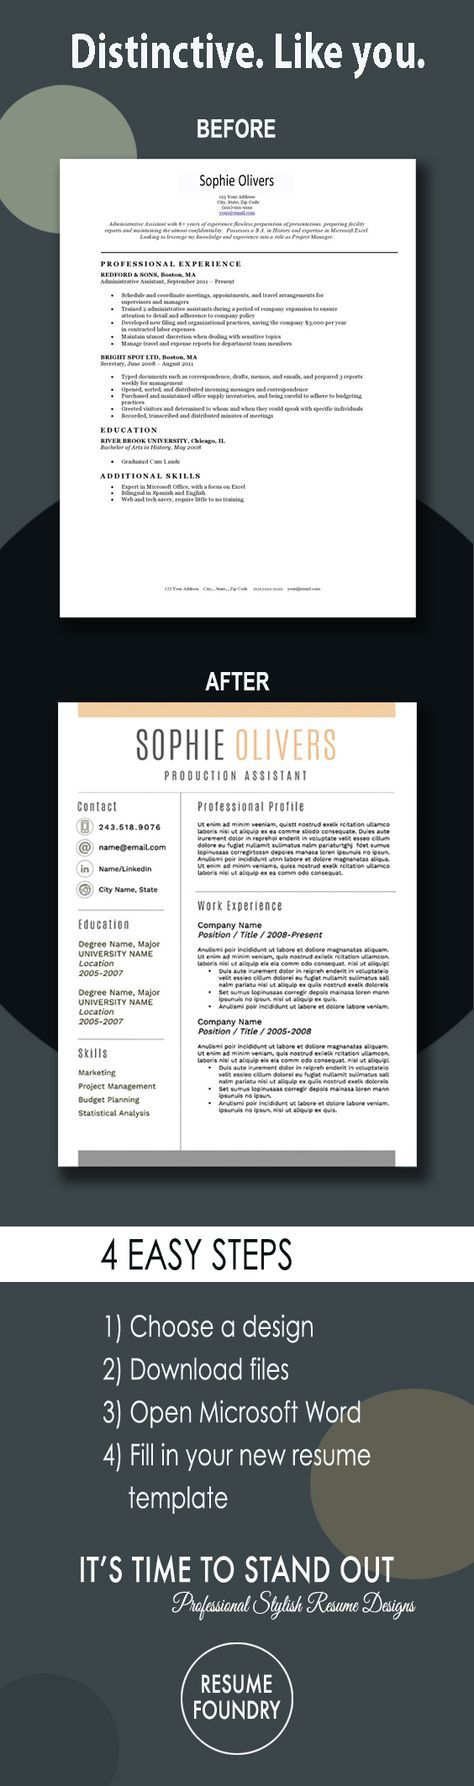 Resumes that are Distinctive, Like you. | Resume | Pinterest